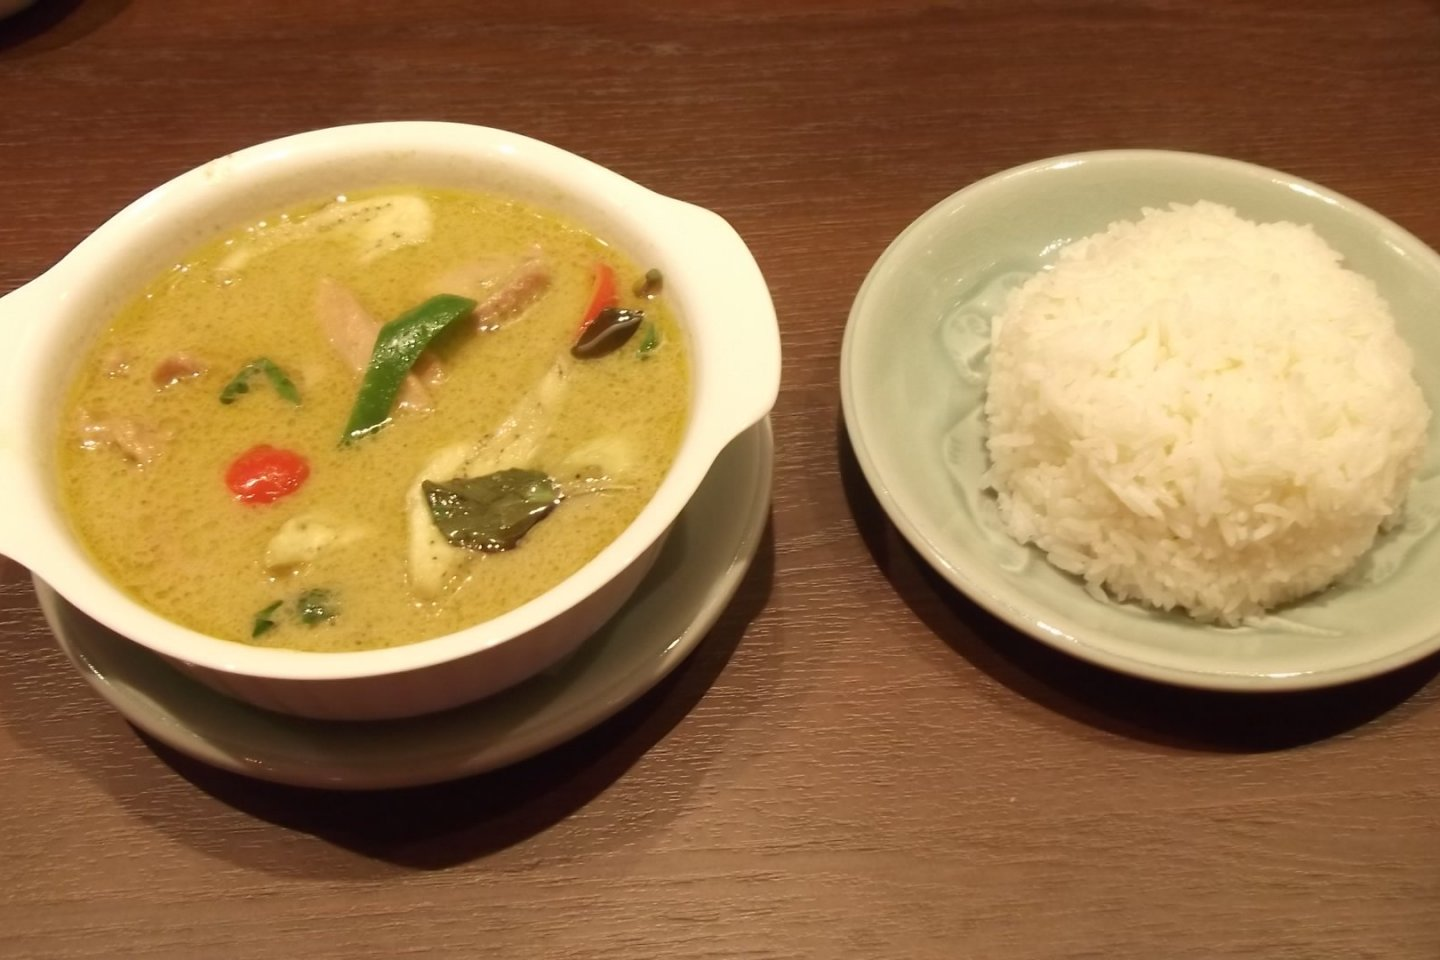 My green curry